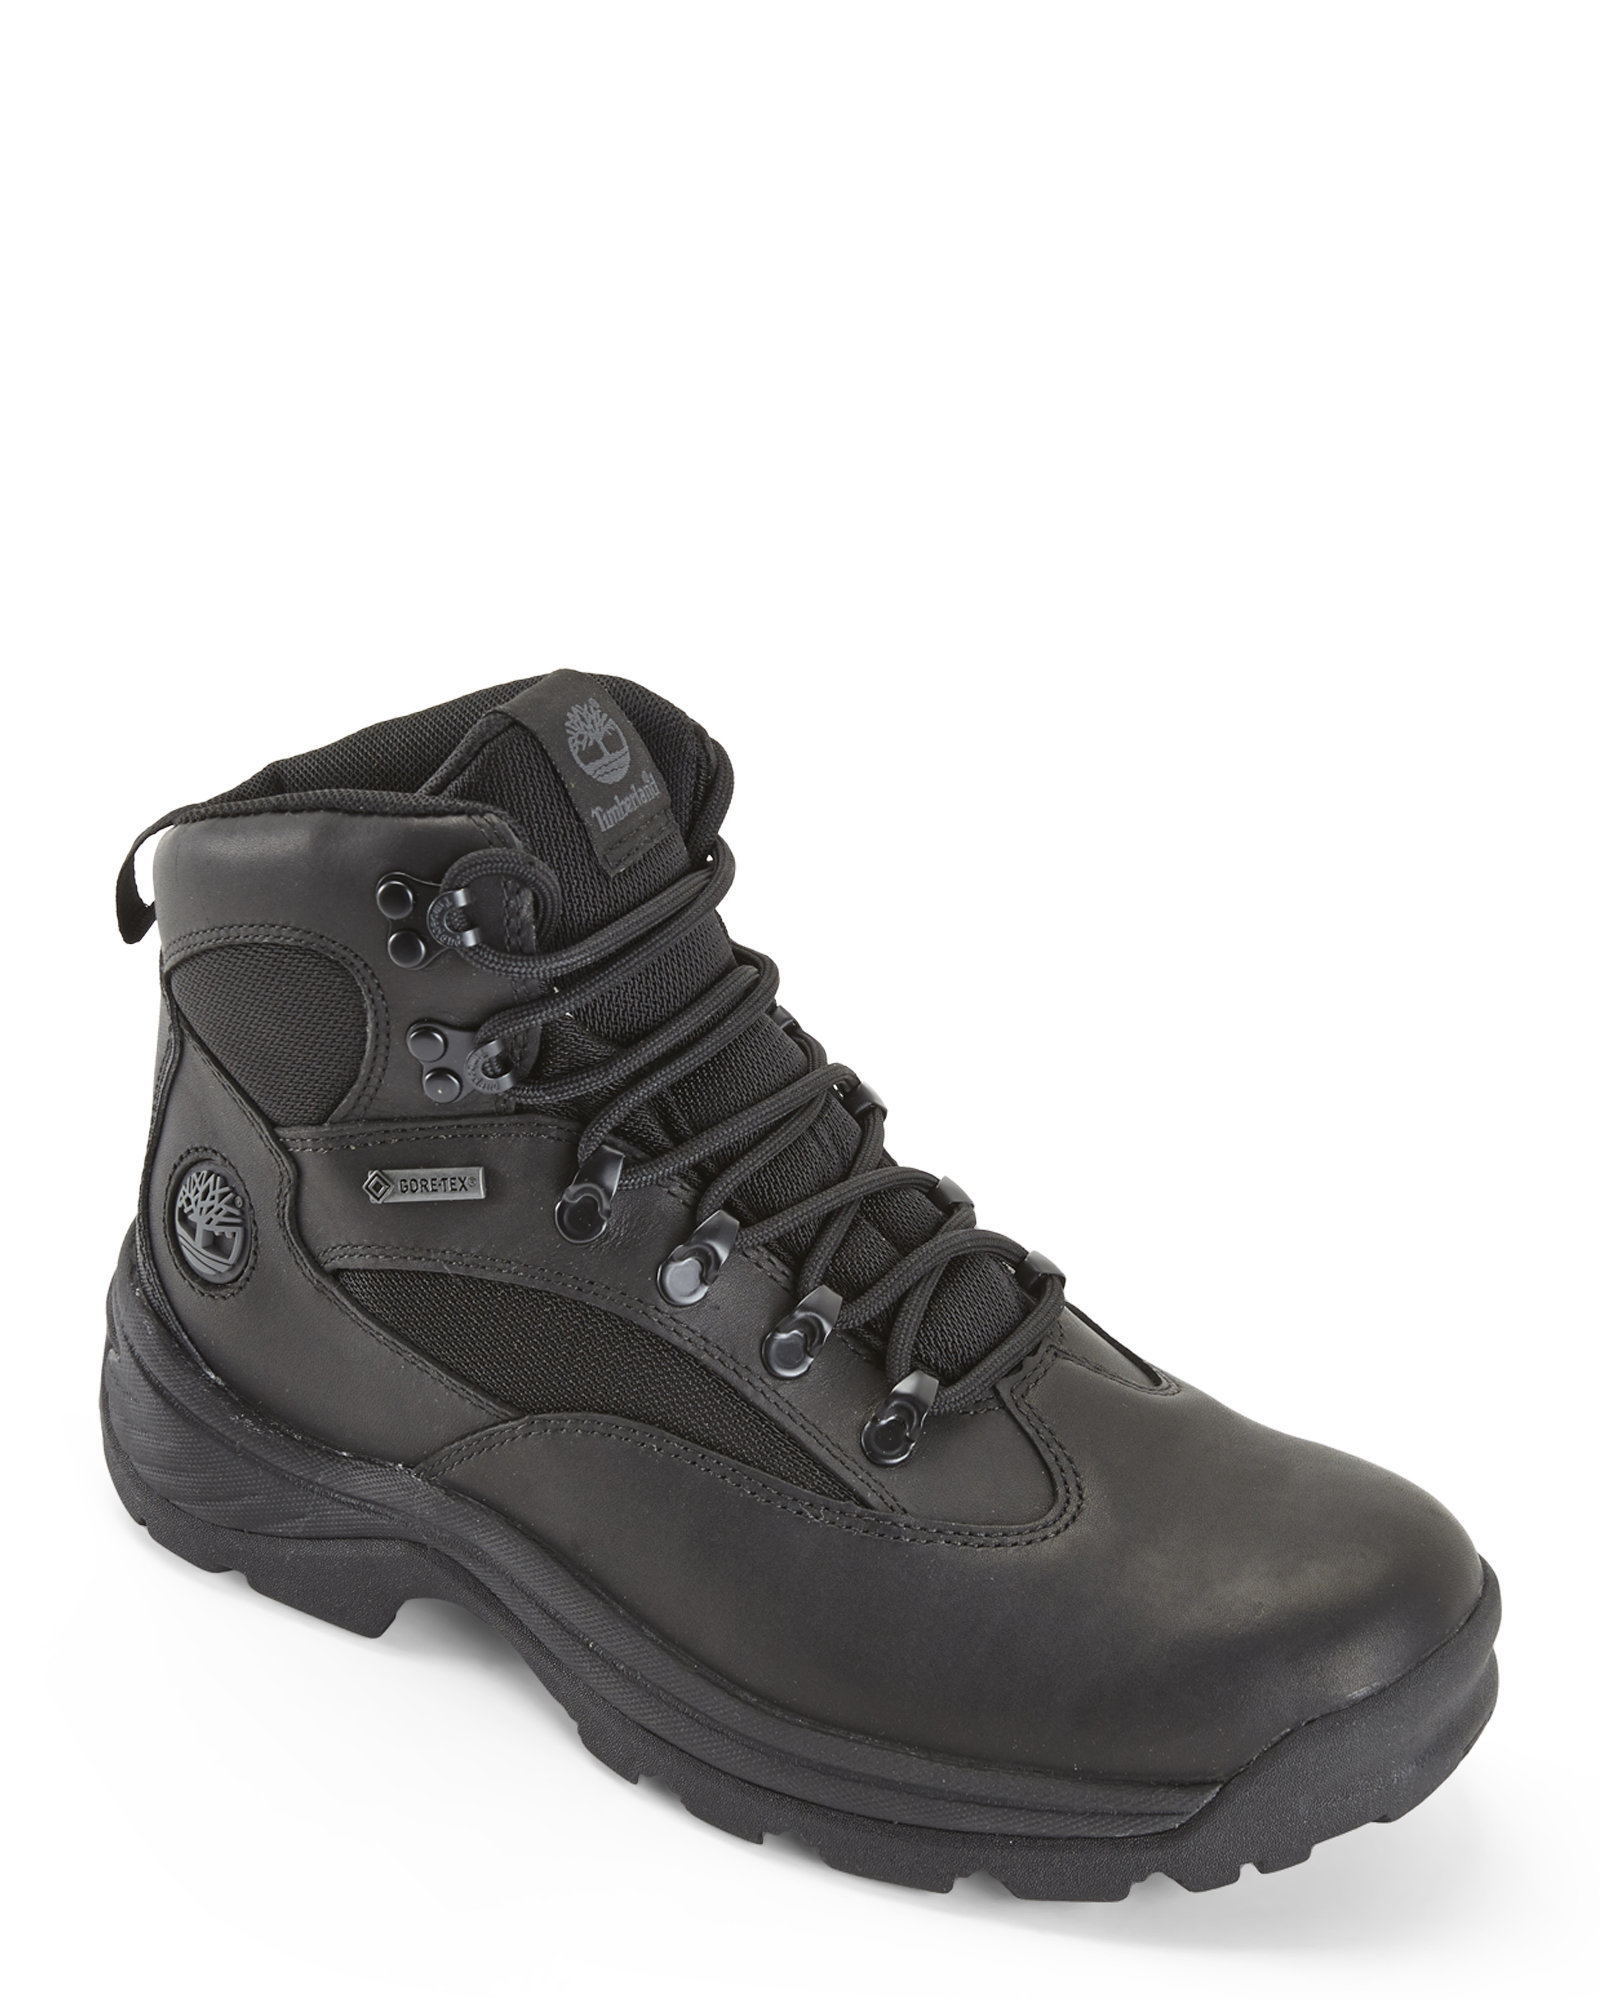 36c63278e36 Timberland Black Chocorua Trail Gore-Tex Hiking Boots for men